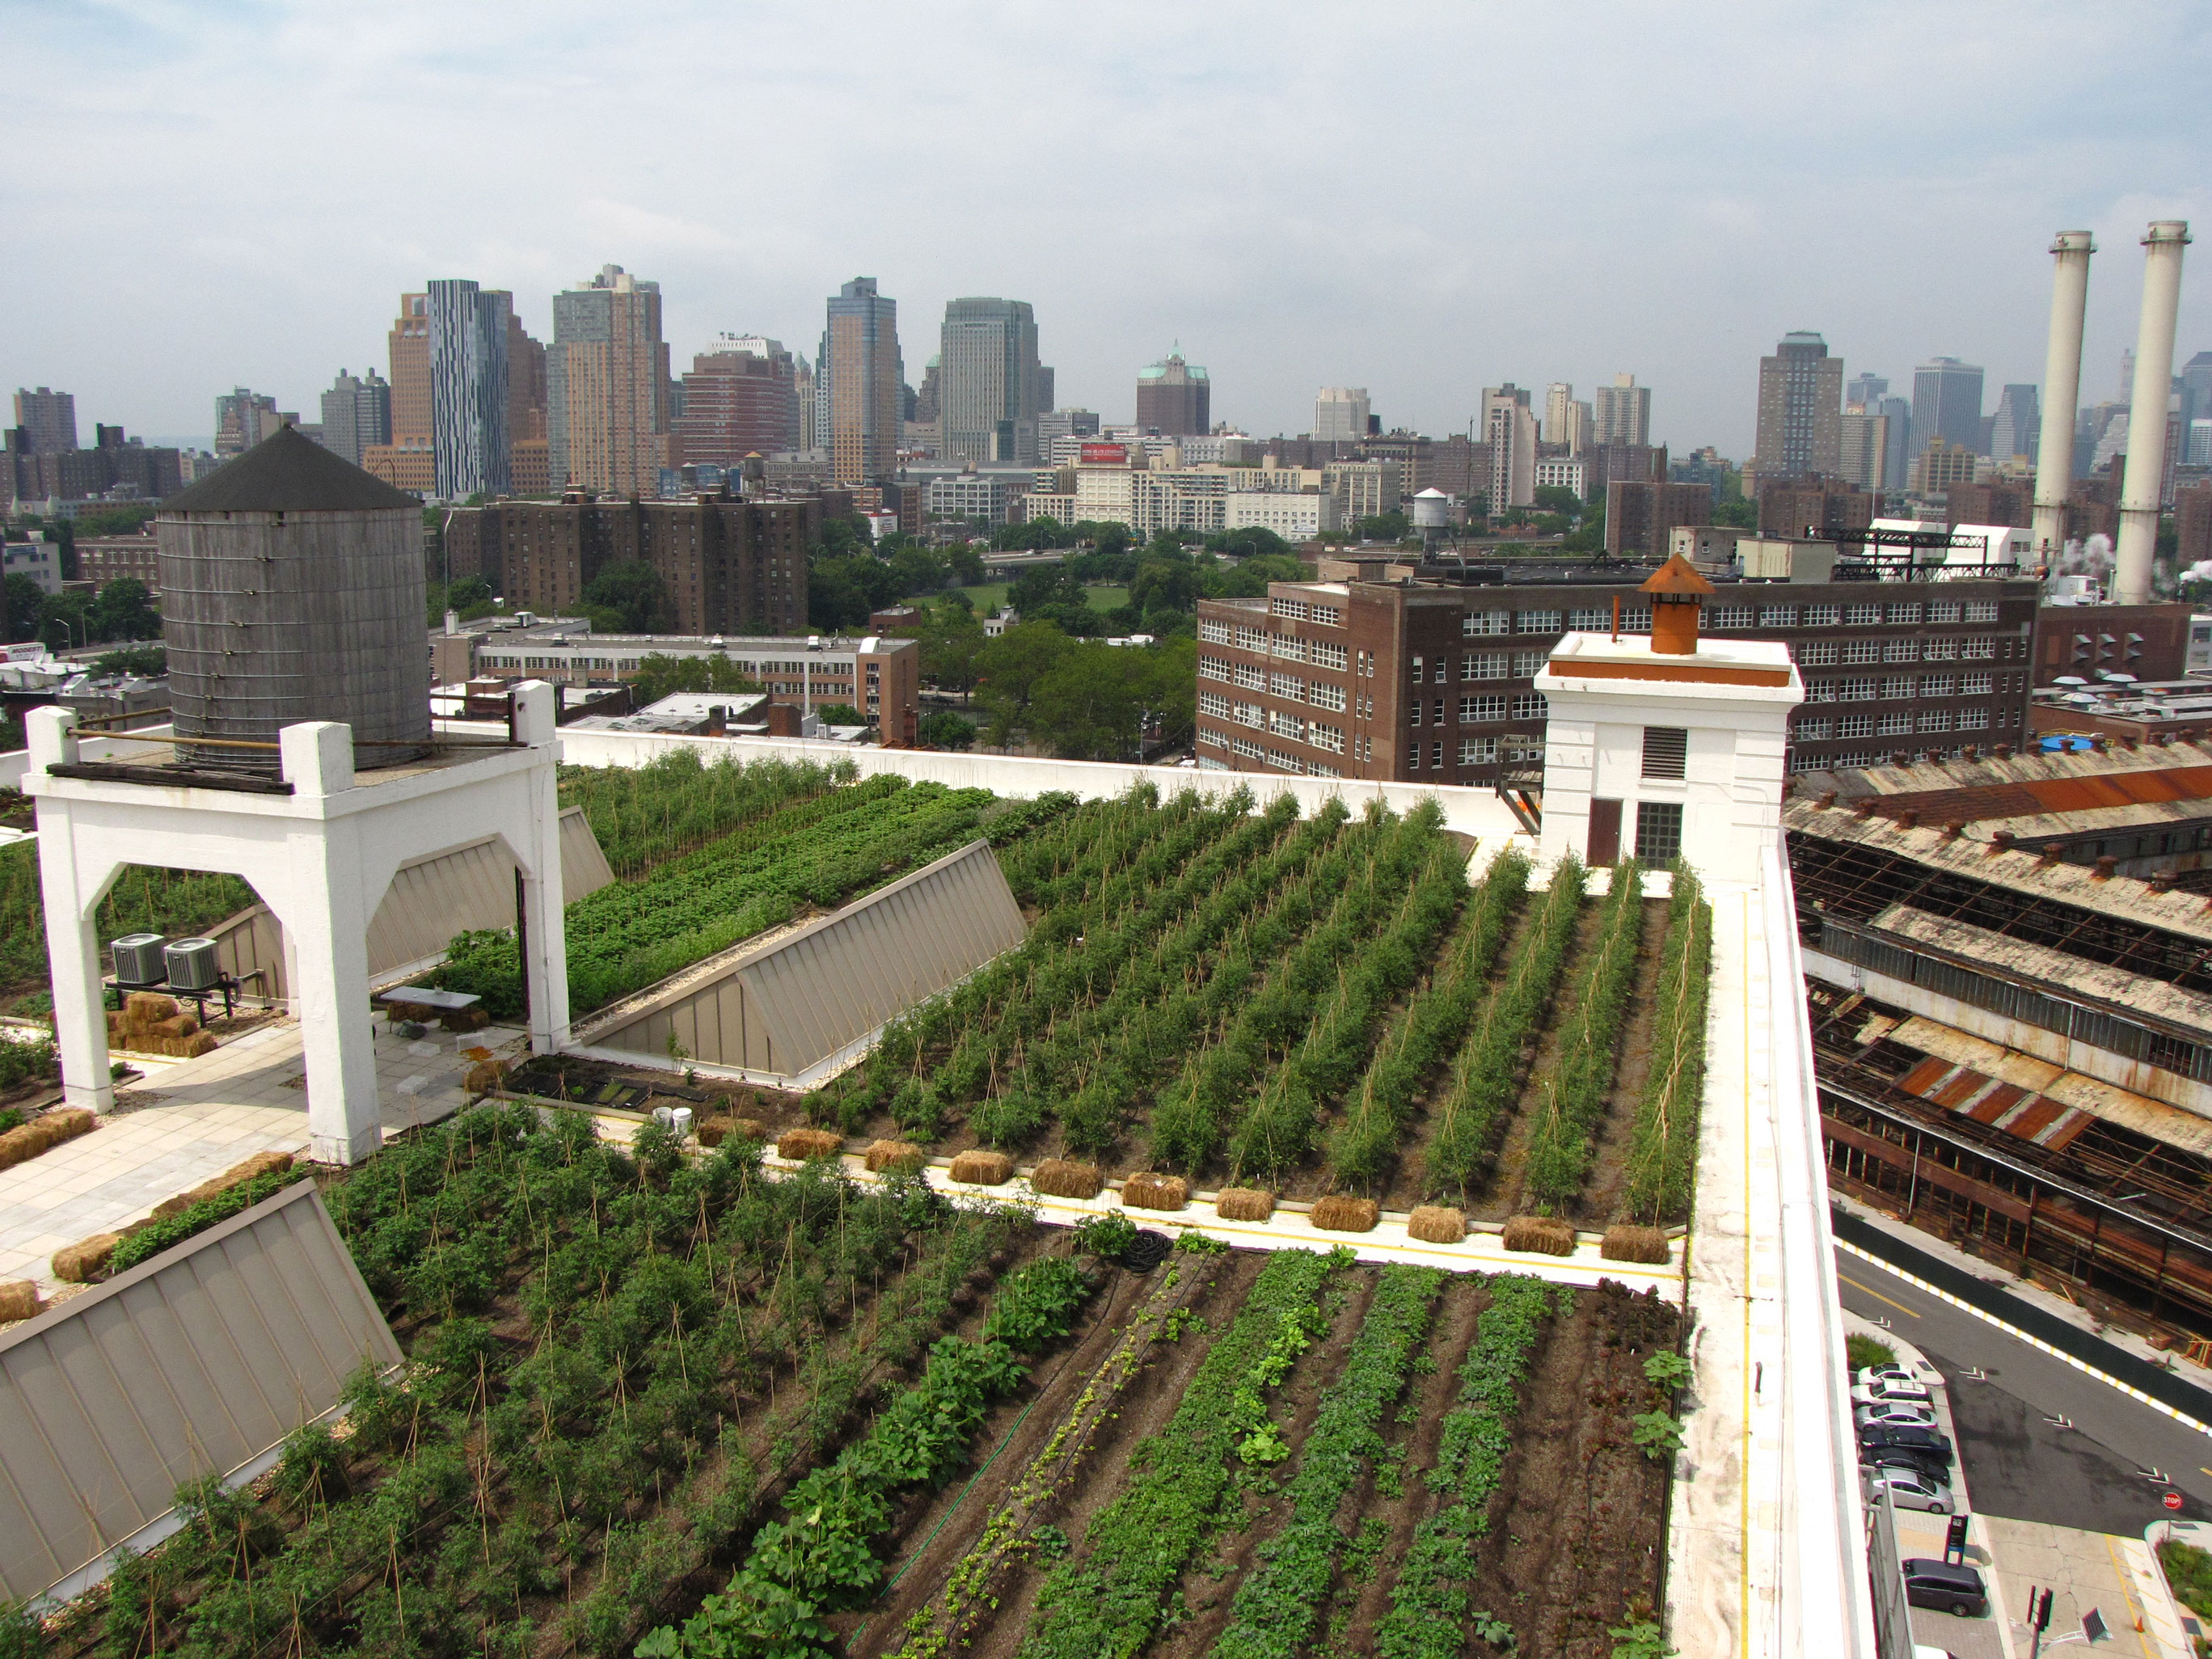 Brooklyn Grange Rooftop Farm #2 at Brooklyn Navy Yard, Building No. 3 Featured Image